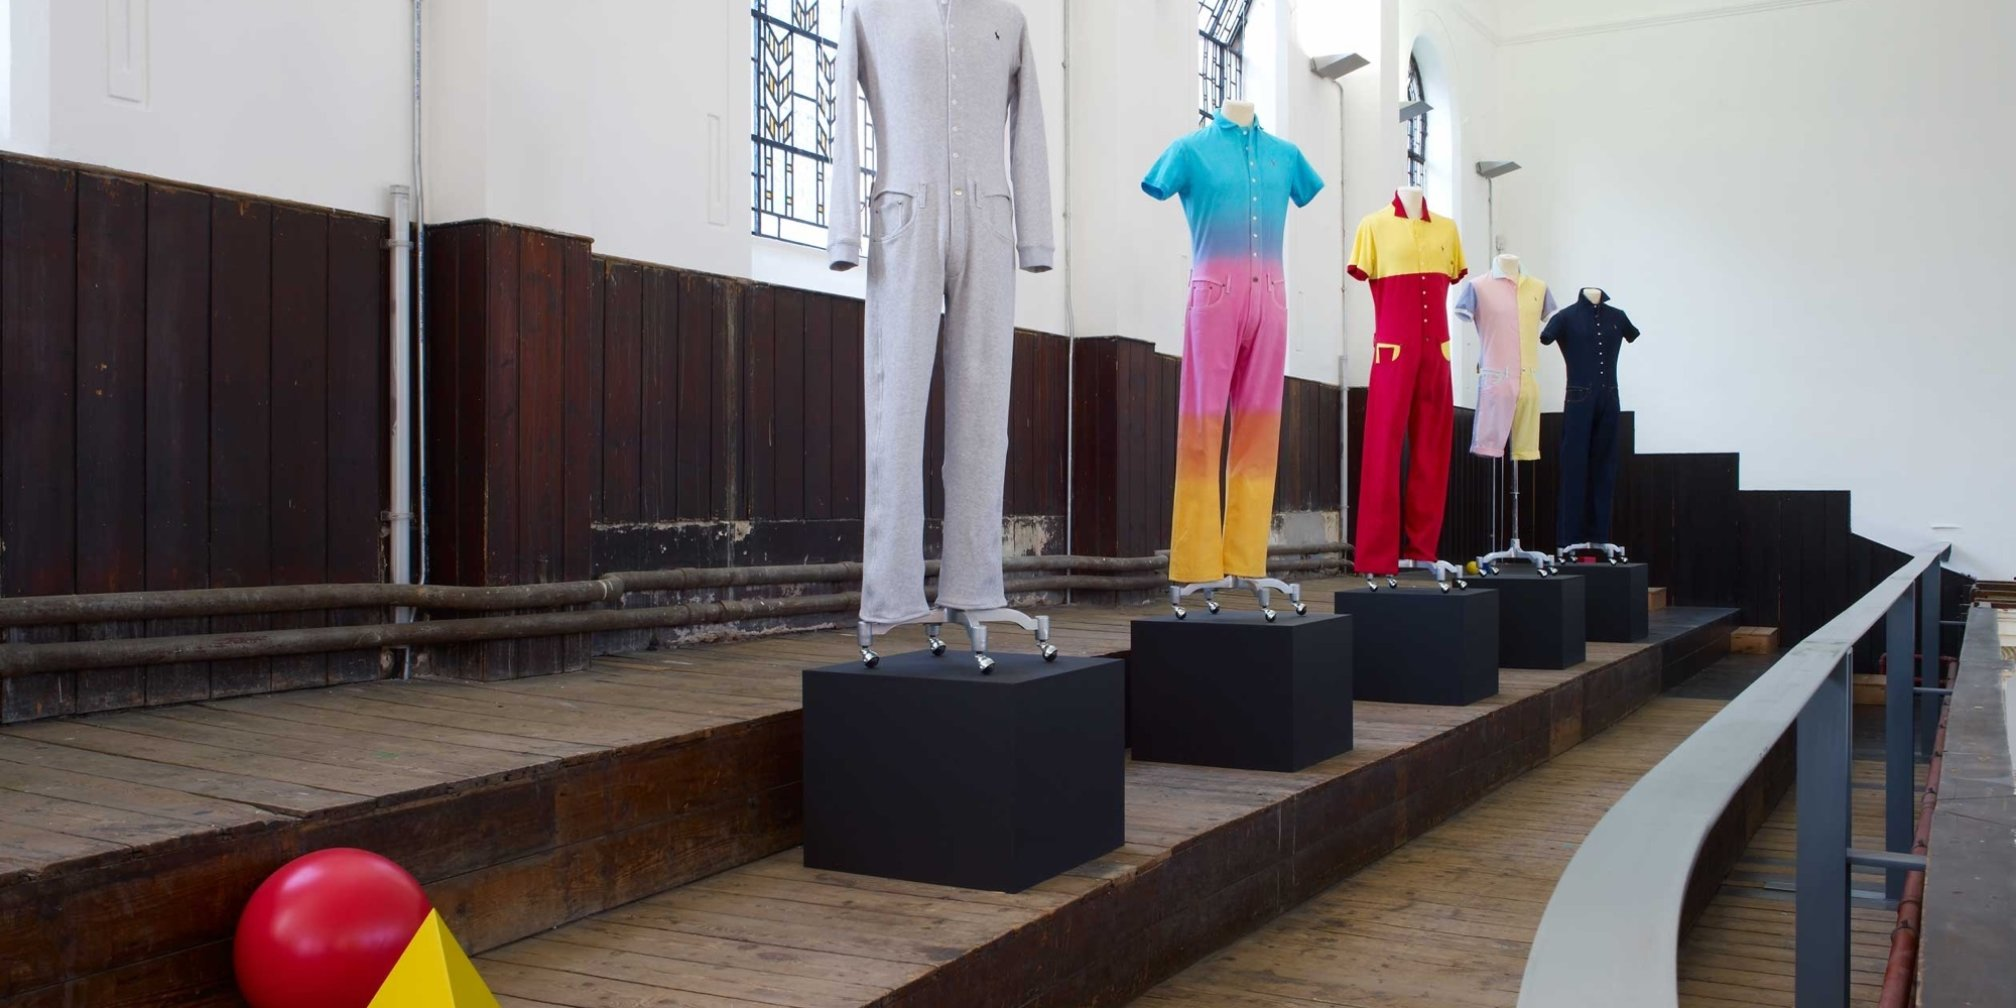 Matthew Darbyshire, Standardised Production Clothing Versions 1-10, 2009, installation view, The Shape We're In, 2011 at Zabludowicz Collection London. Photo: Stephen White